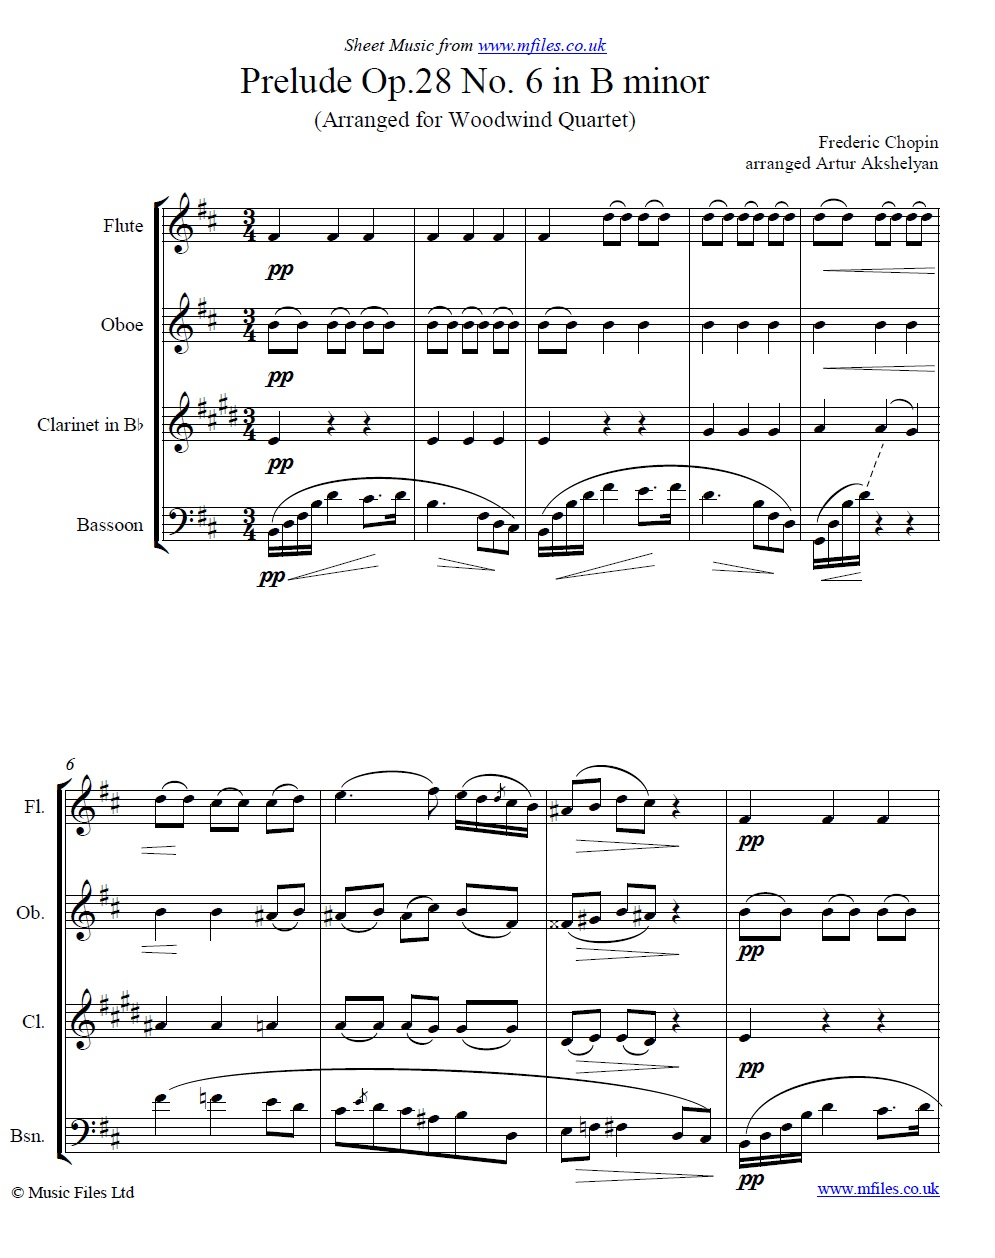 Chopin's Prelude no.6 for woodwind quartet - sheet music 1st page